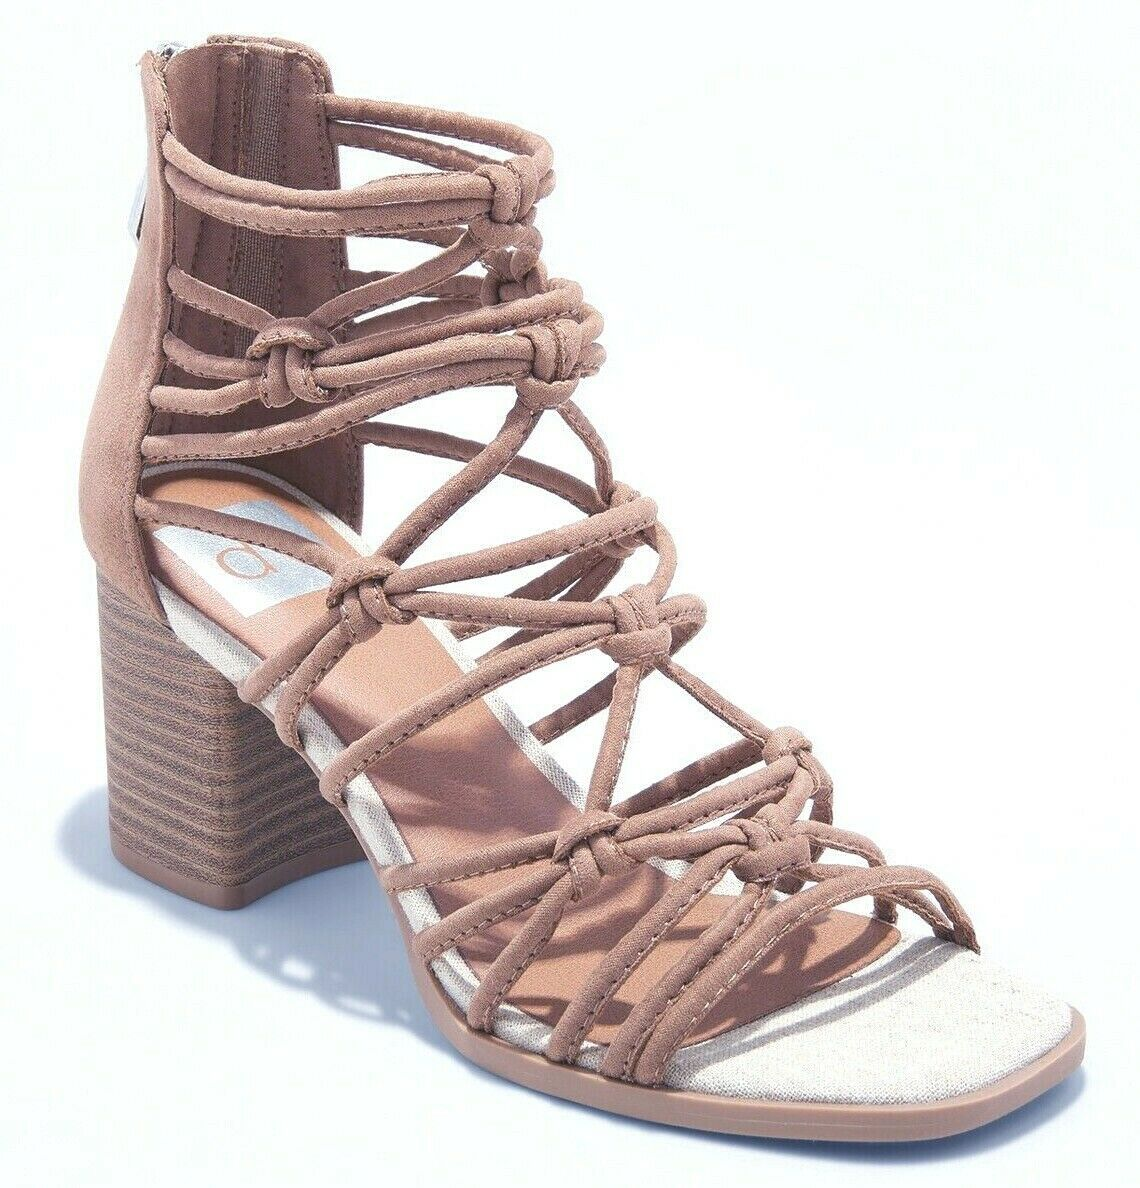 DV Women's Taupe Faux Suede Adira Strappy Knotted Zippered Back Heeled Sandals